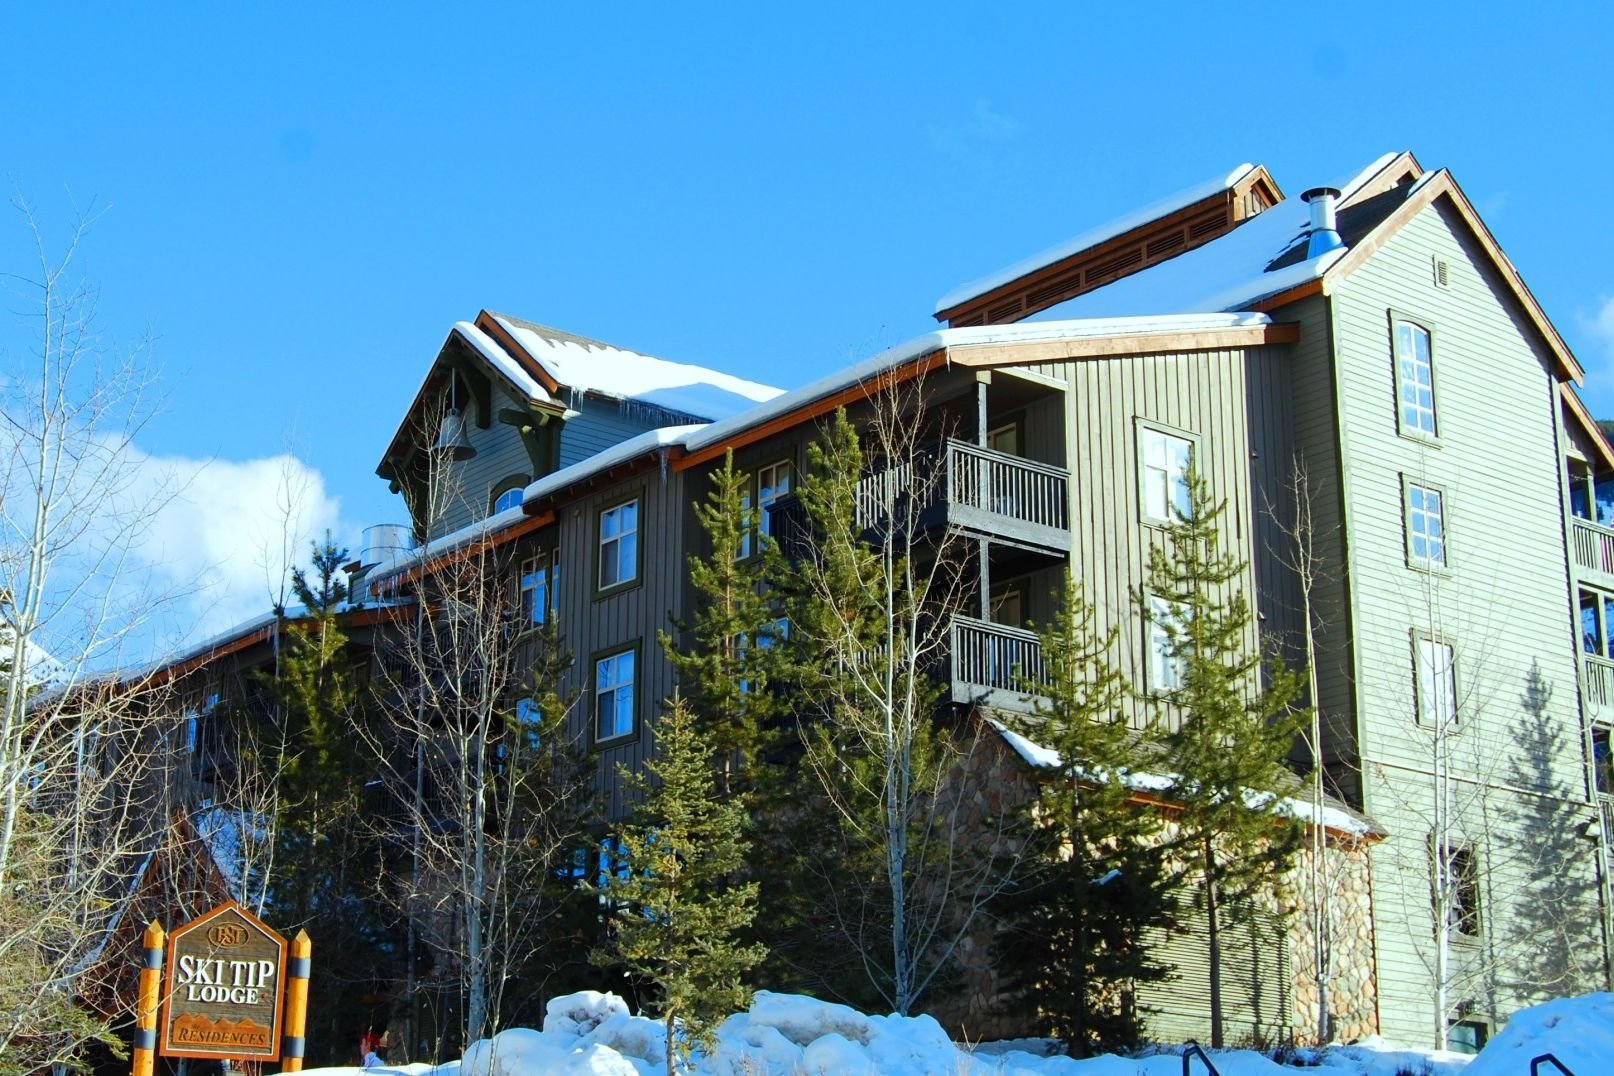 Panorama Mountain Village - ski tip exterior.jpg